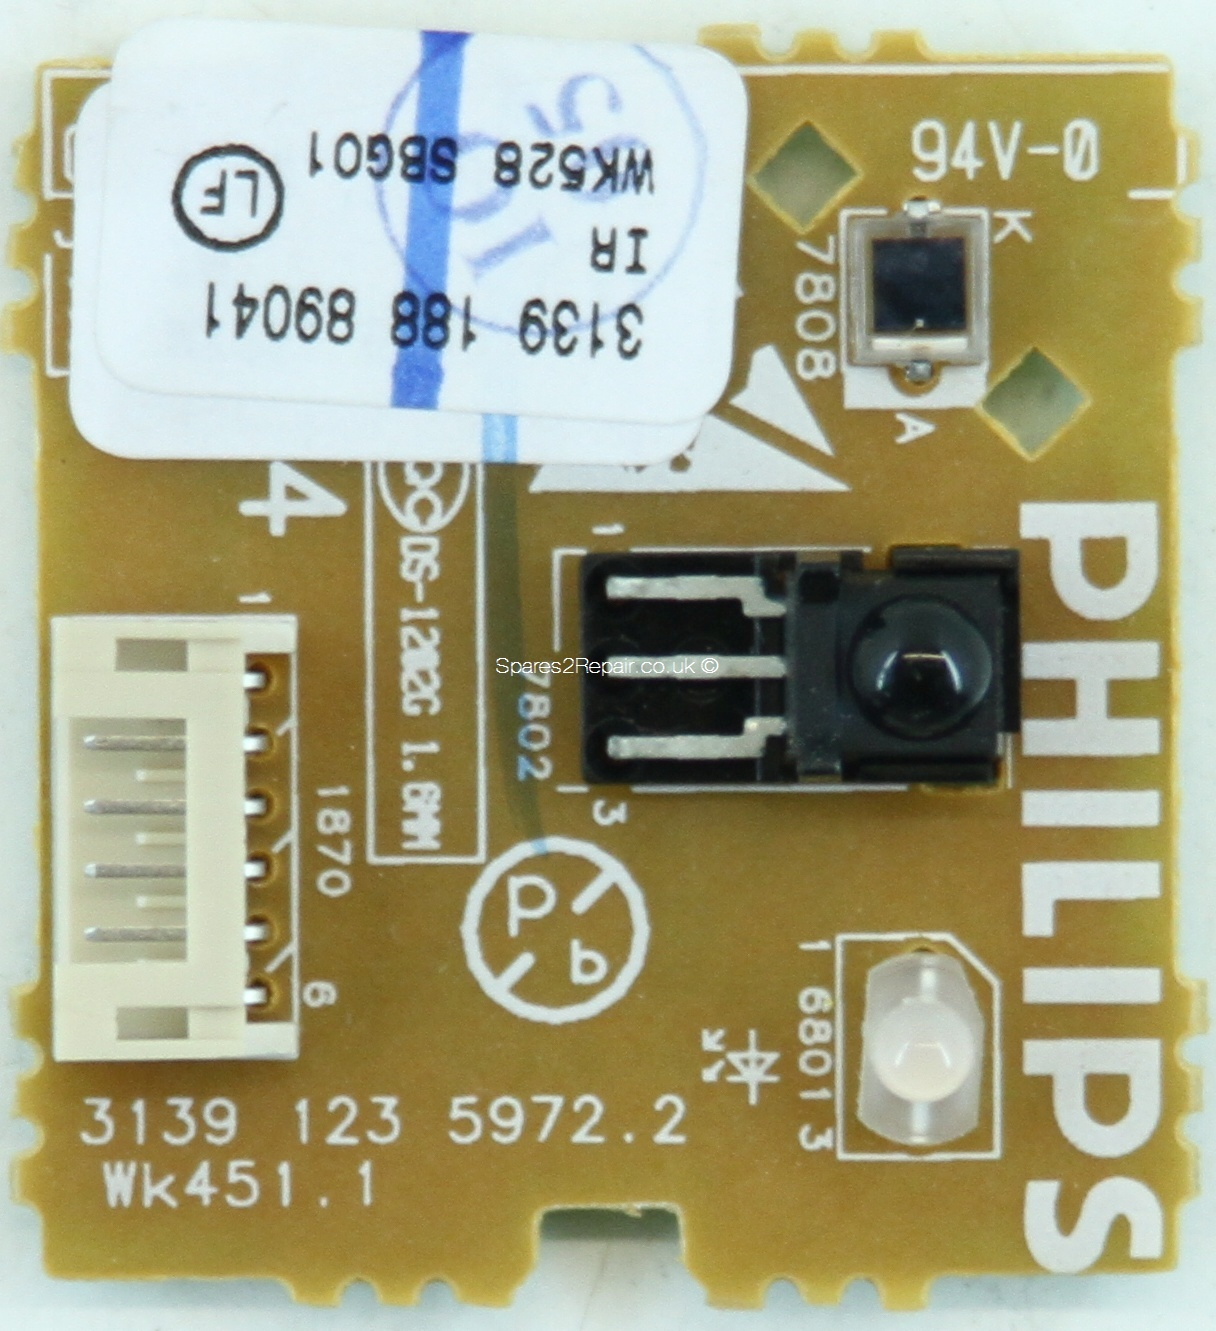 Philips 32PF7520D - IR - 3139 123 5972.2 - 3139 188 89041